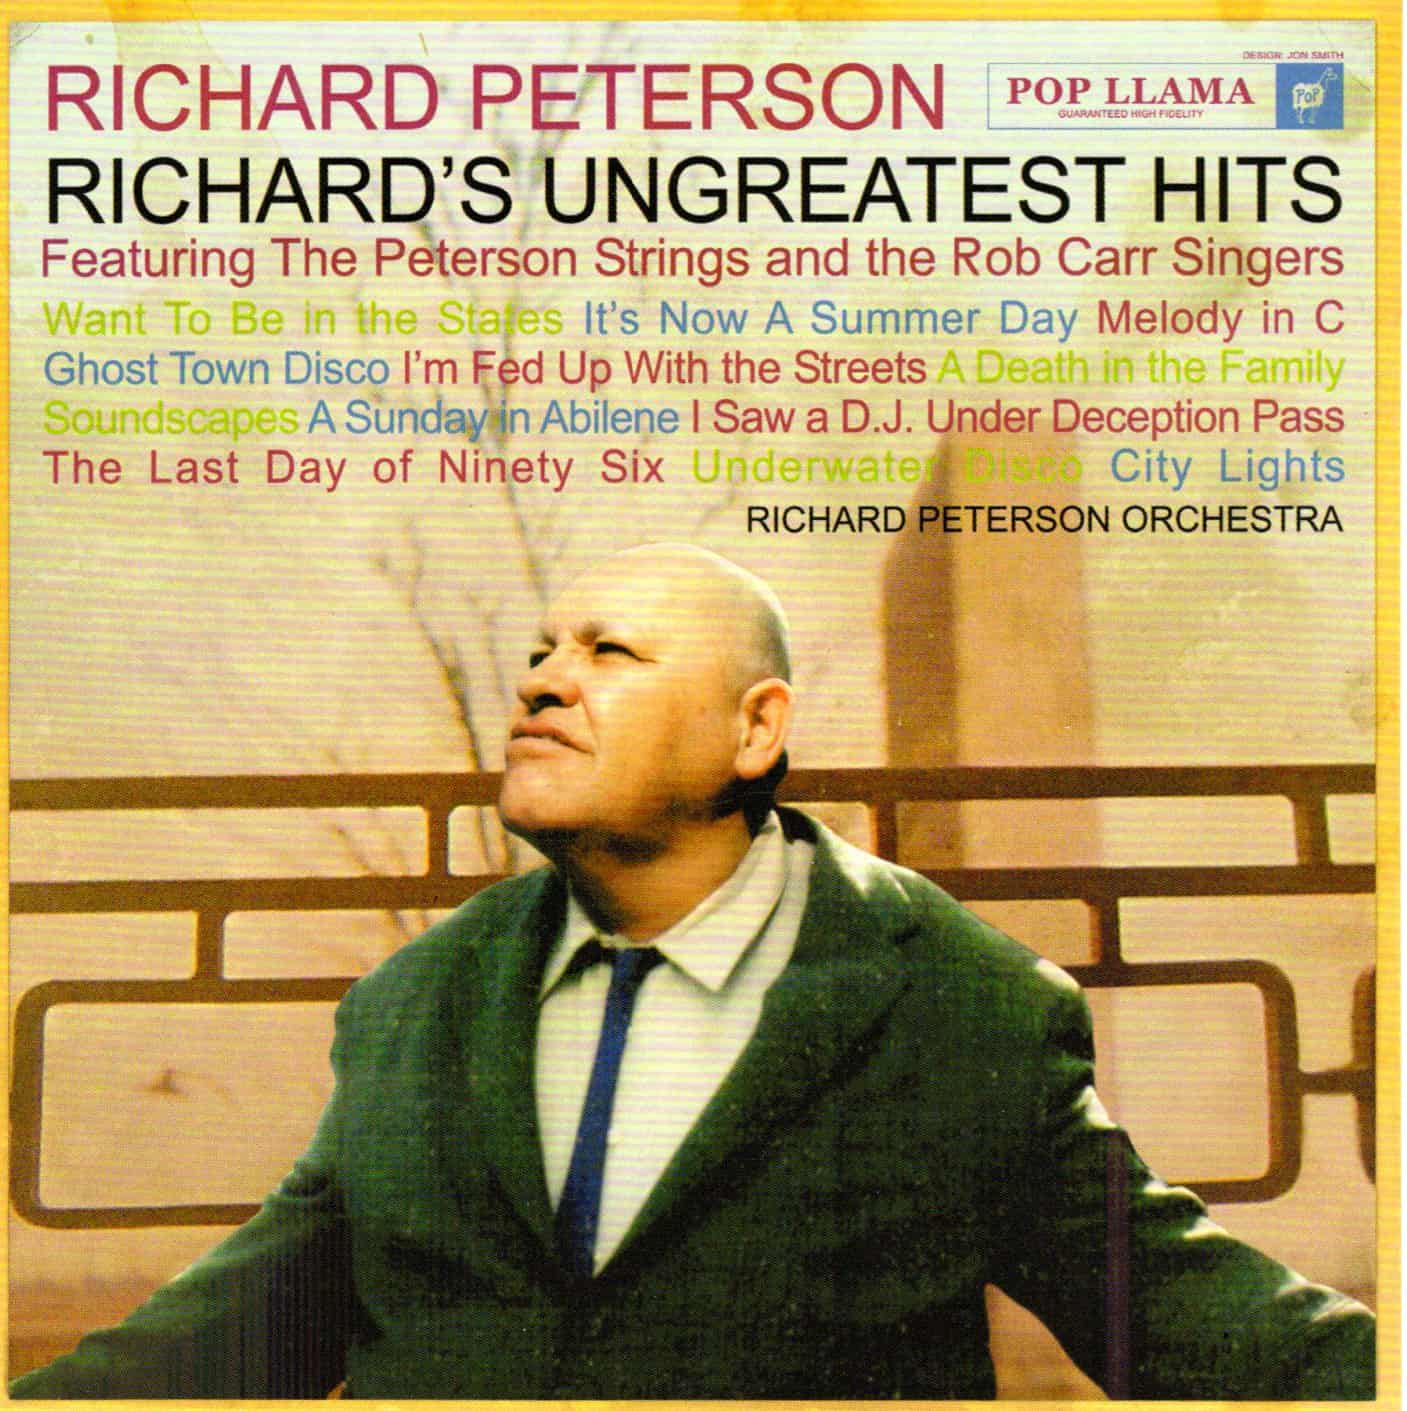 Richard Peterson's Ungreatest Hits